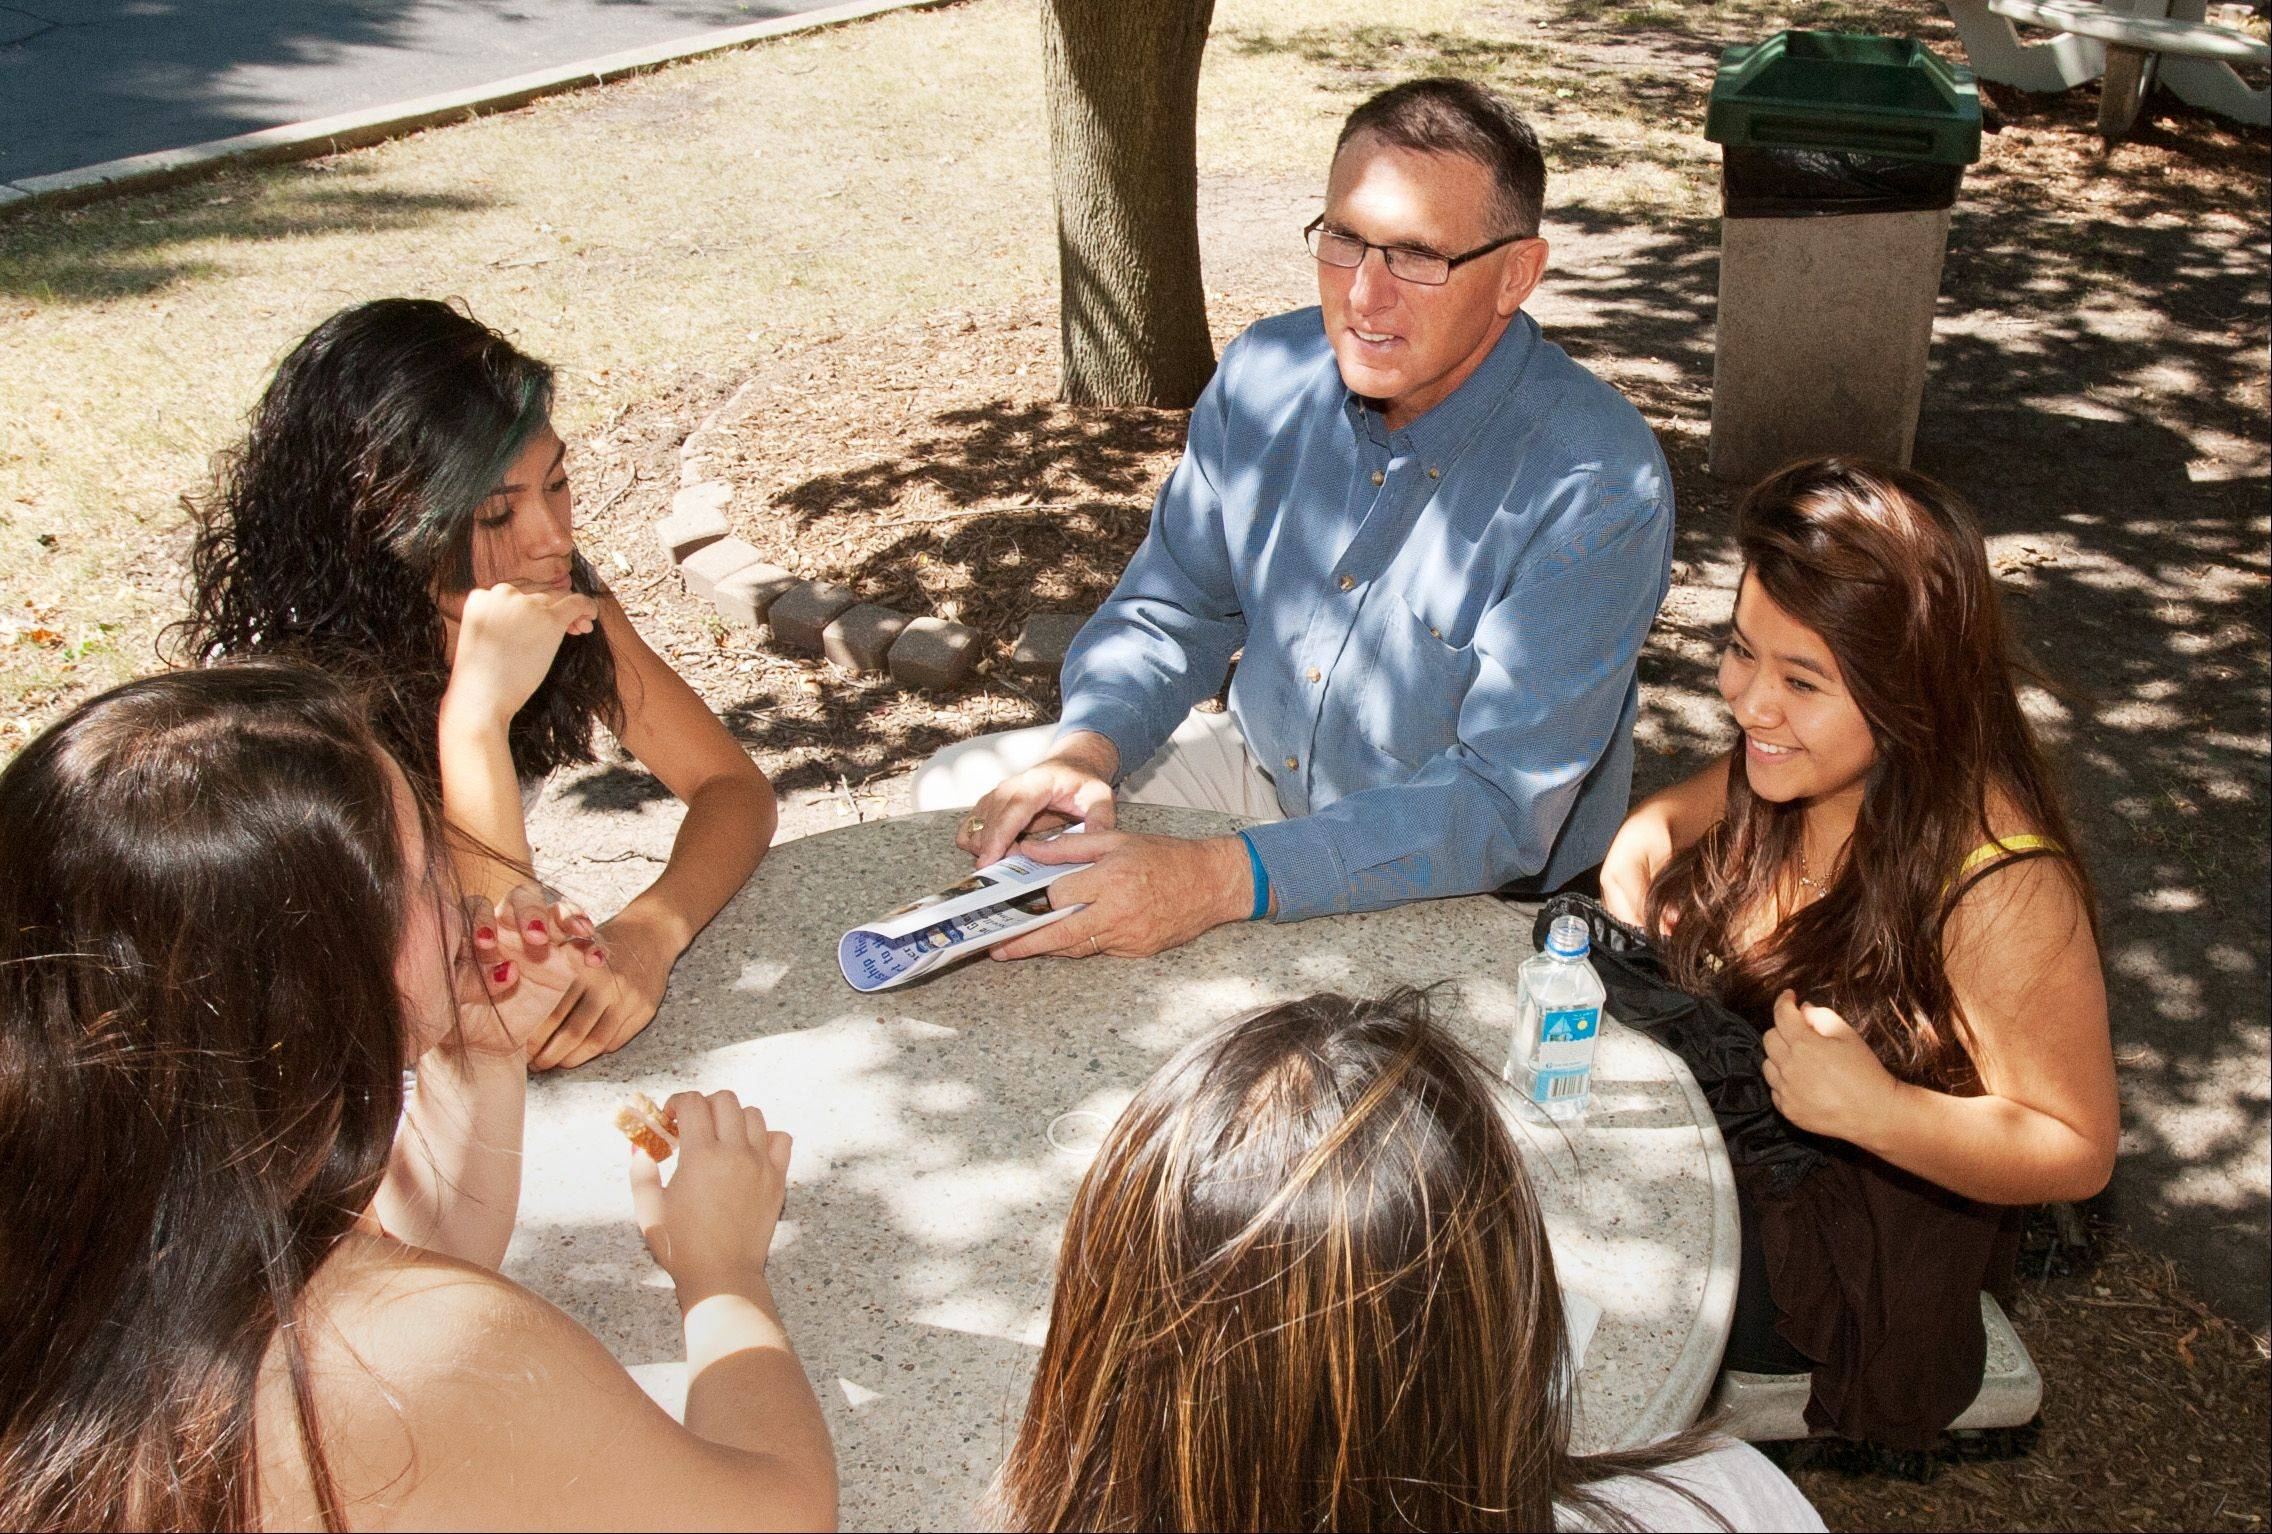 Former Glenbard High School District 87 Superintendent Mike Meissen talks with students taking summer classes at Glenbard West, including Ivet Nunez, left, and Yoana Tapia. He stepped down last week after six years leading the state's third-largest high school district.